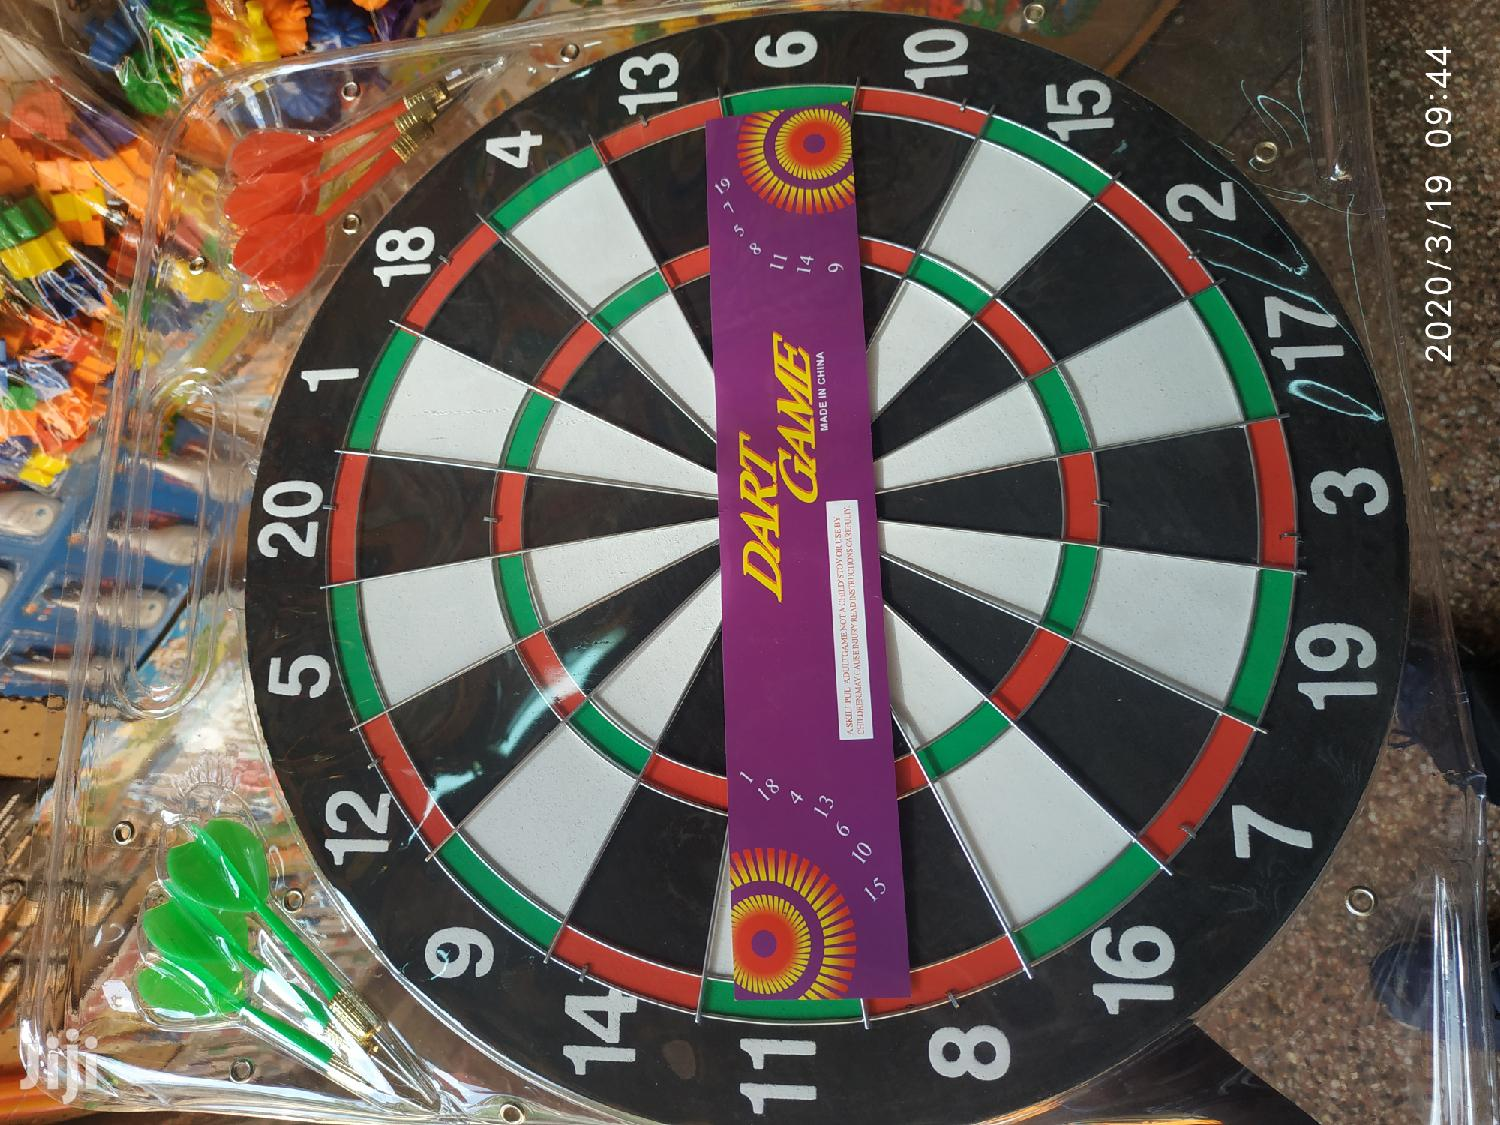 Dart Board Game Toy & Games With Butterfly Darts - Small | Books & Games for sale in Nairobi Central, Nairobi, Kenya